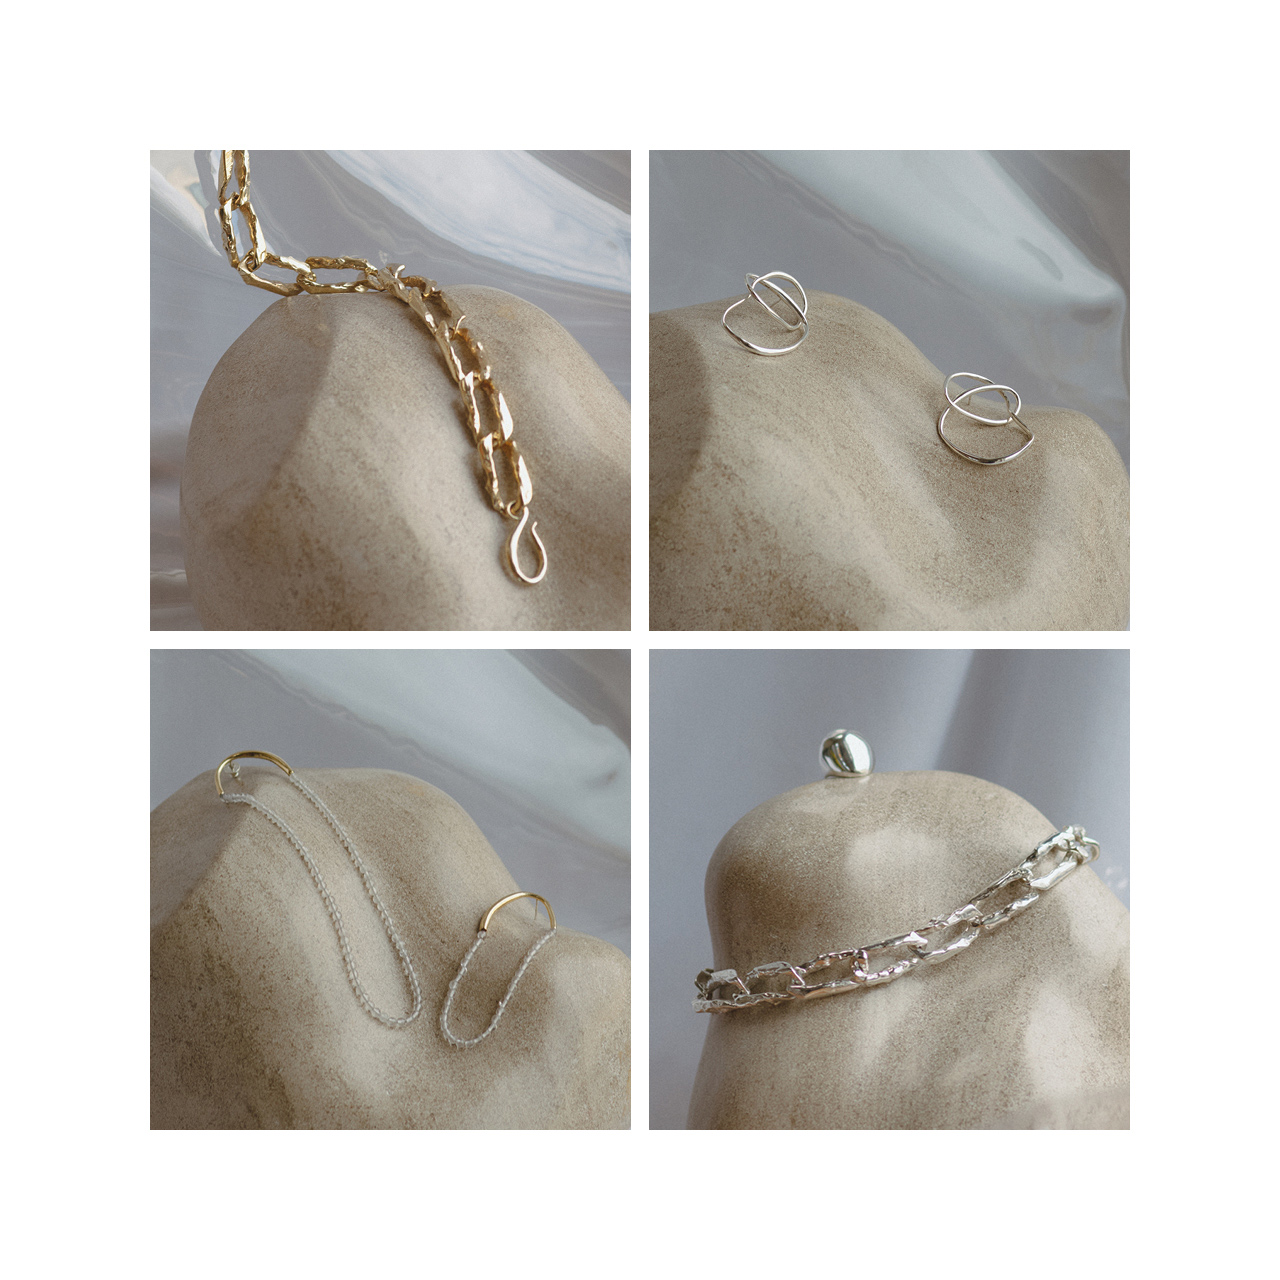 TERRA CHAINs, VINEA KNOT, FILO Earrings and NUEZ Ring by FARIS